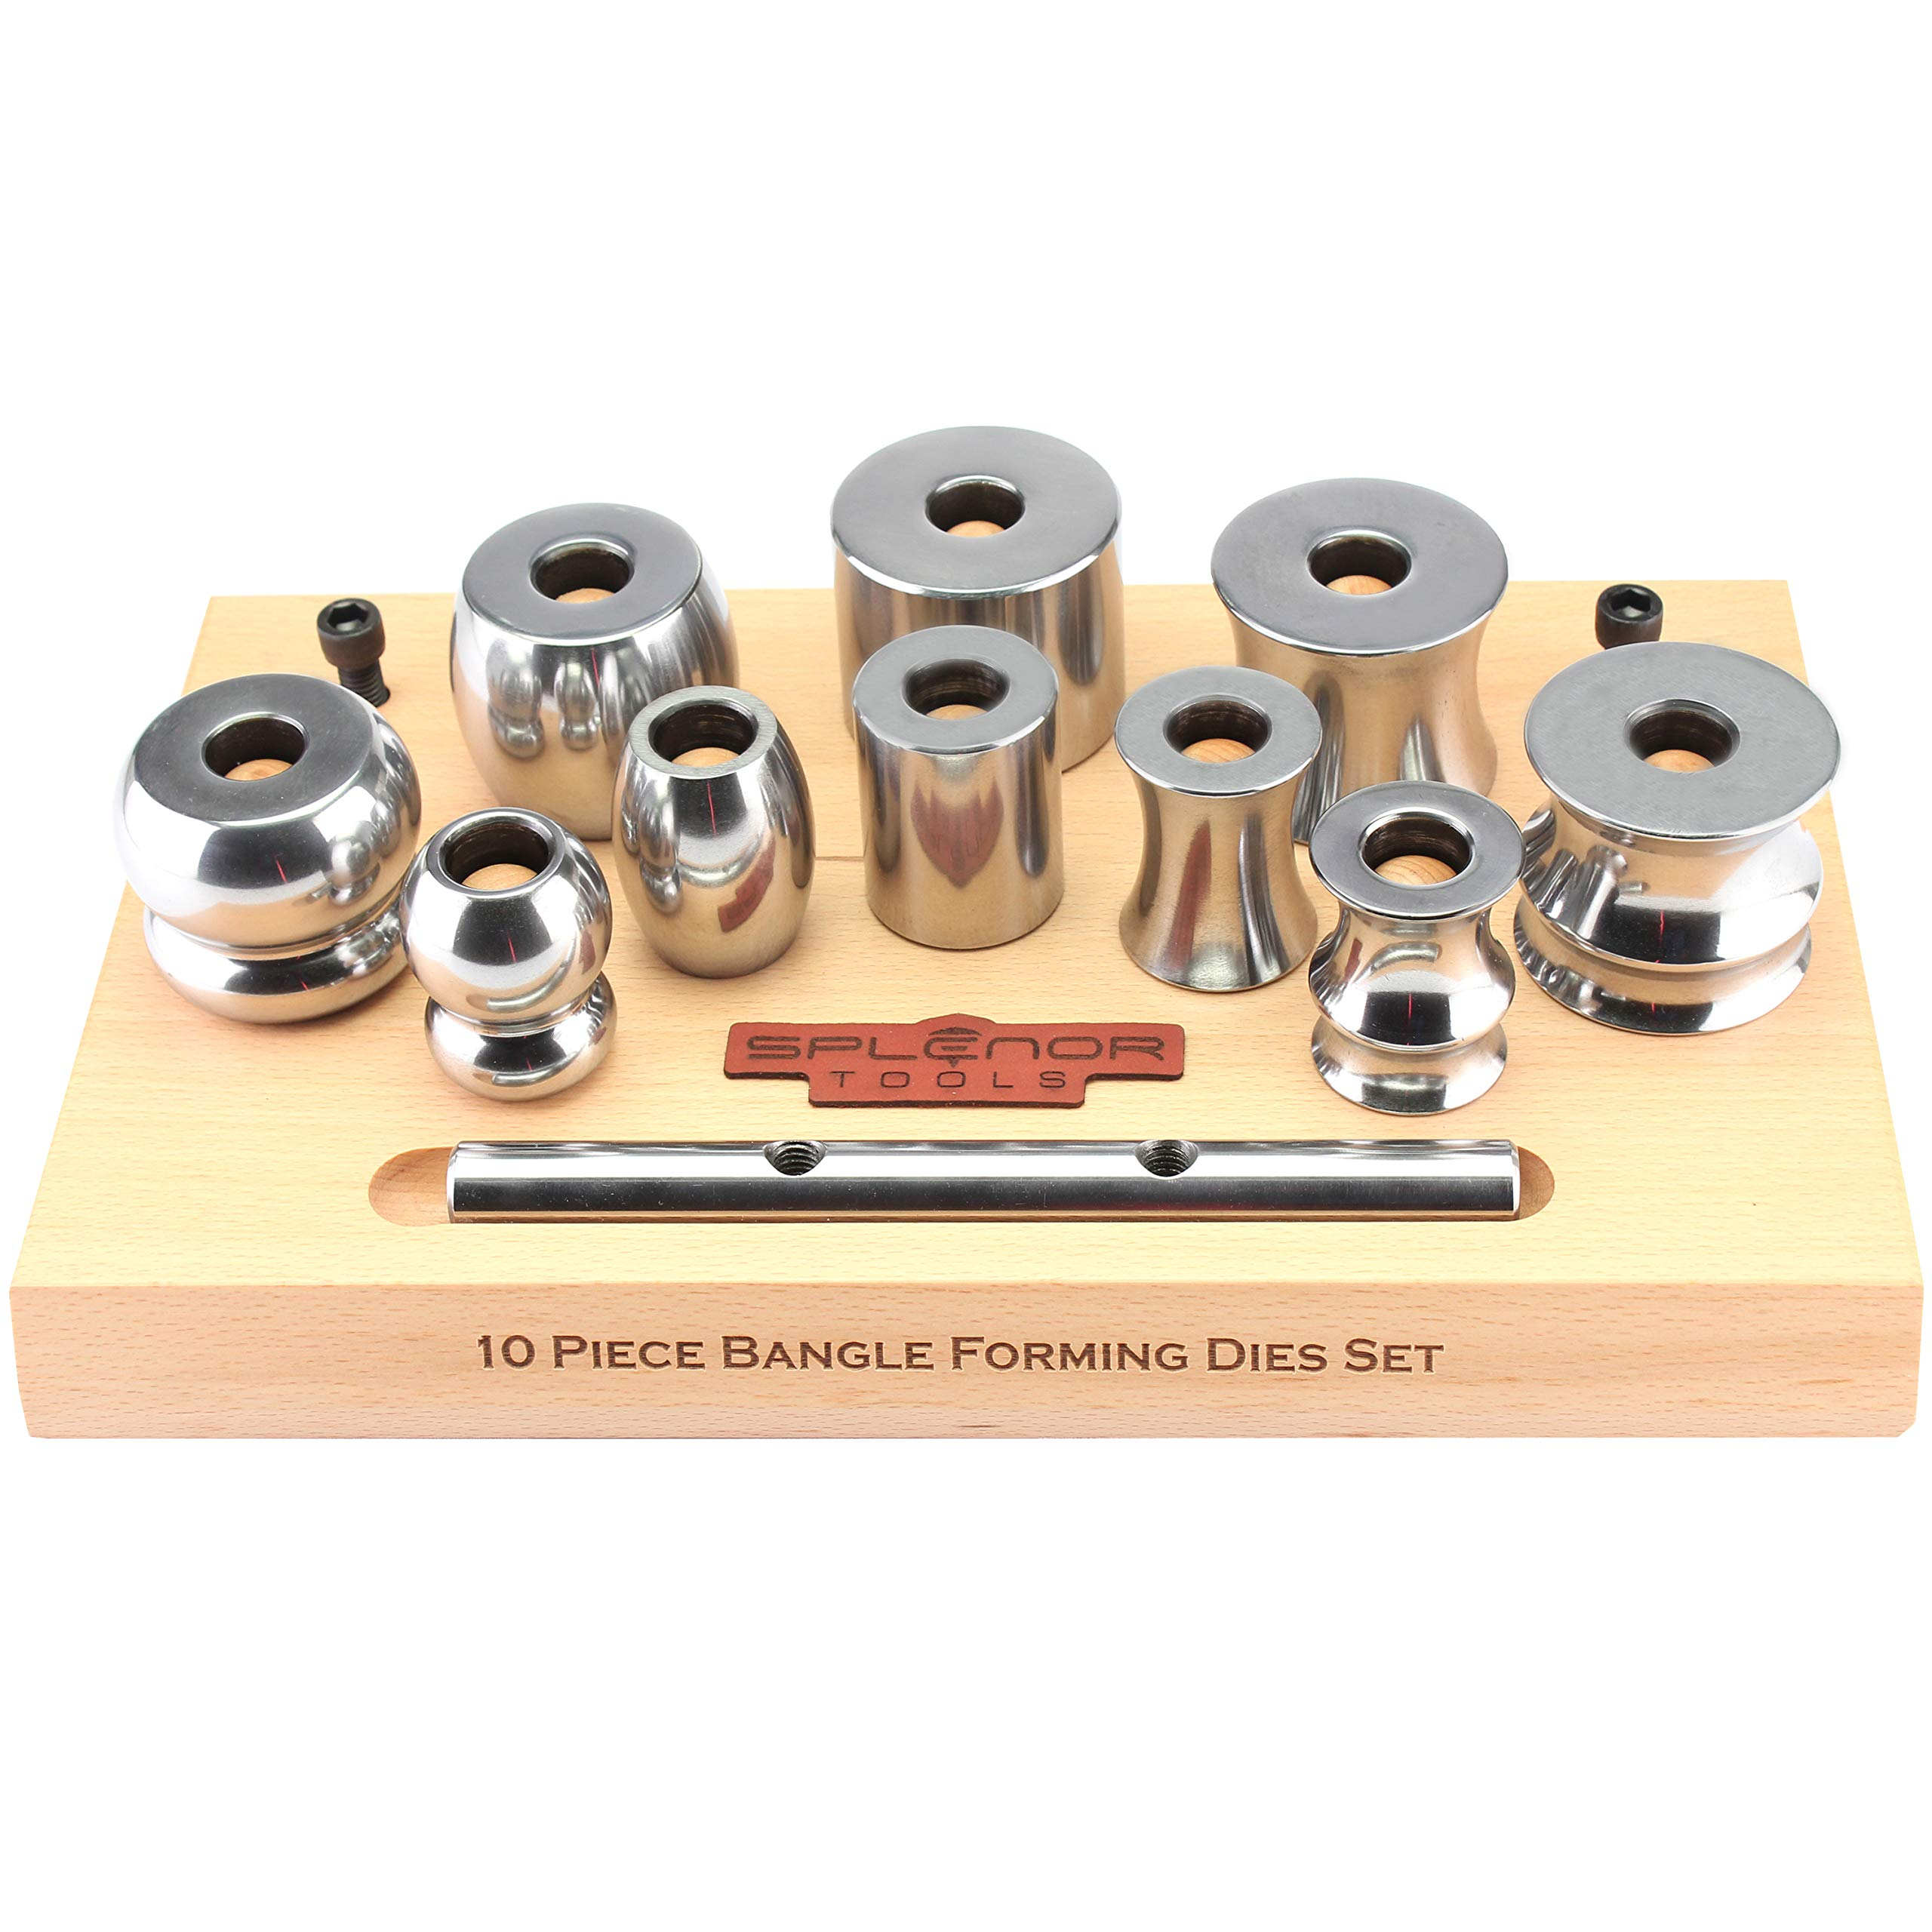 Bangle Forming die Set - splenor tools